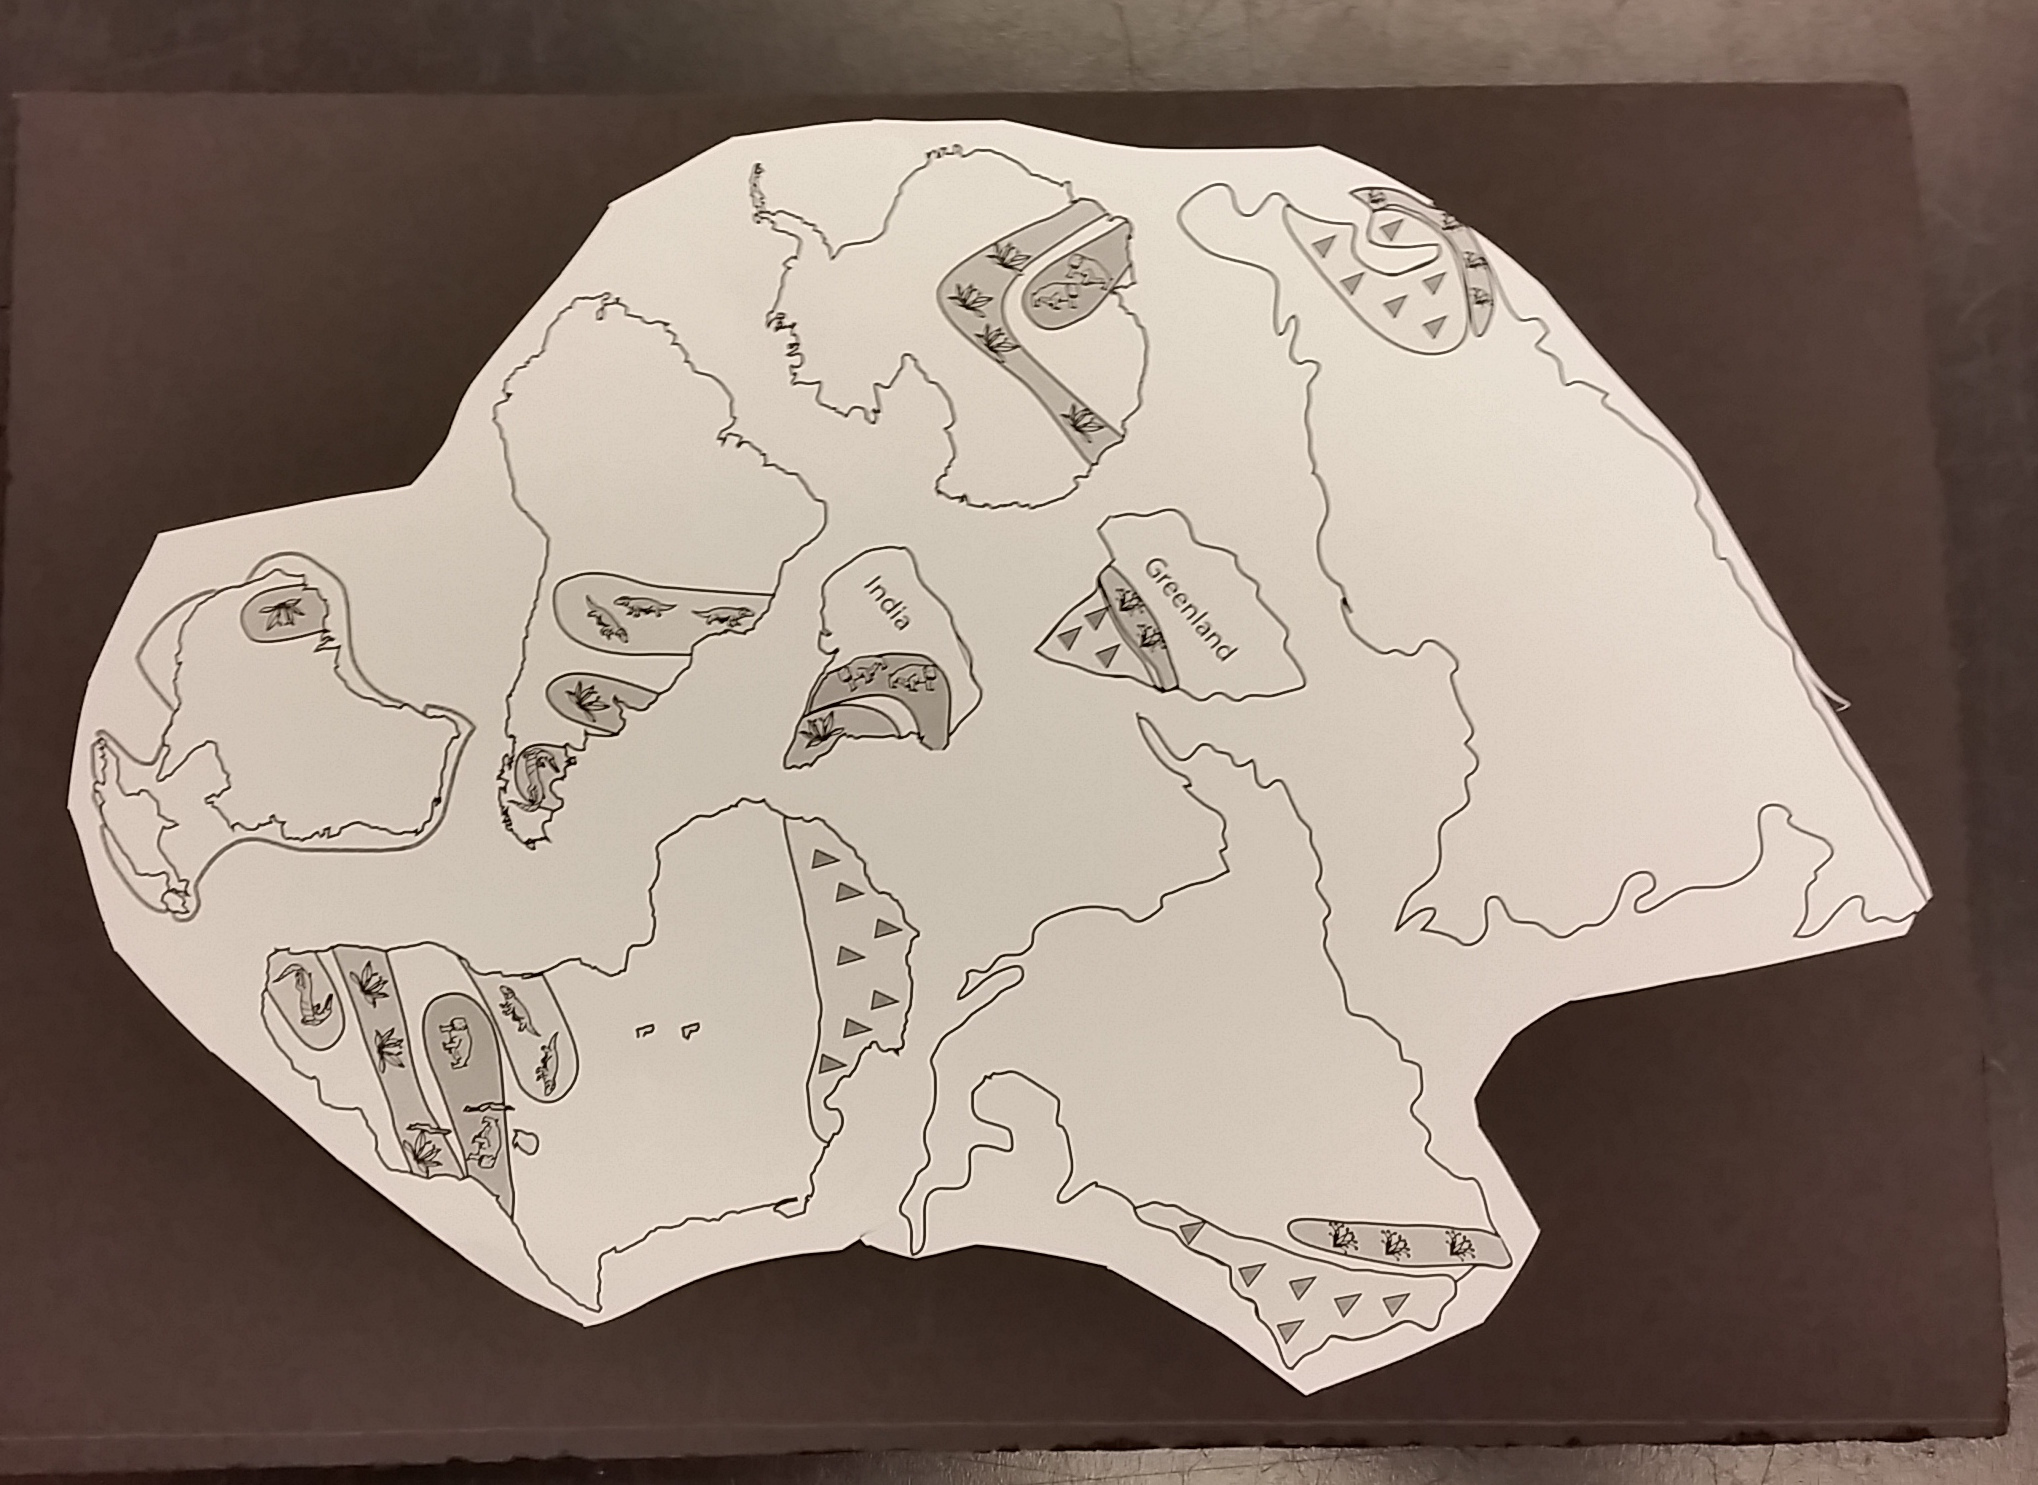 Worksheets Pangea Puzzle Worksheet pangea puzzle worksheet free worksheets library download and plate tectonics teaching materials grades 4 5